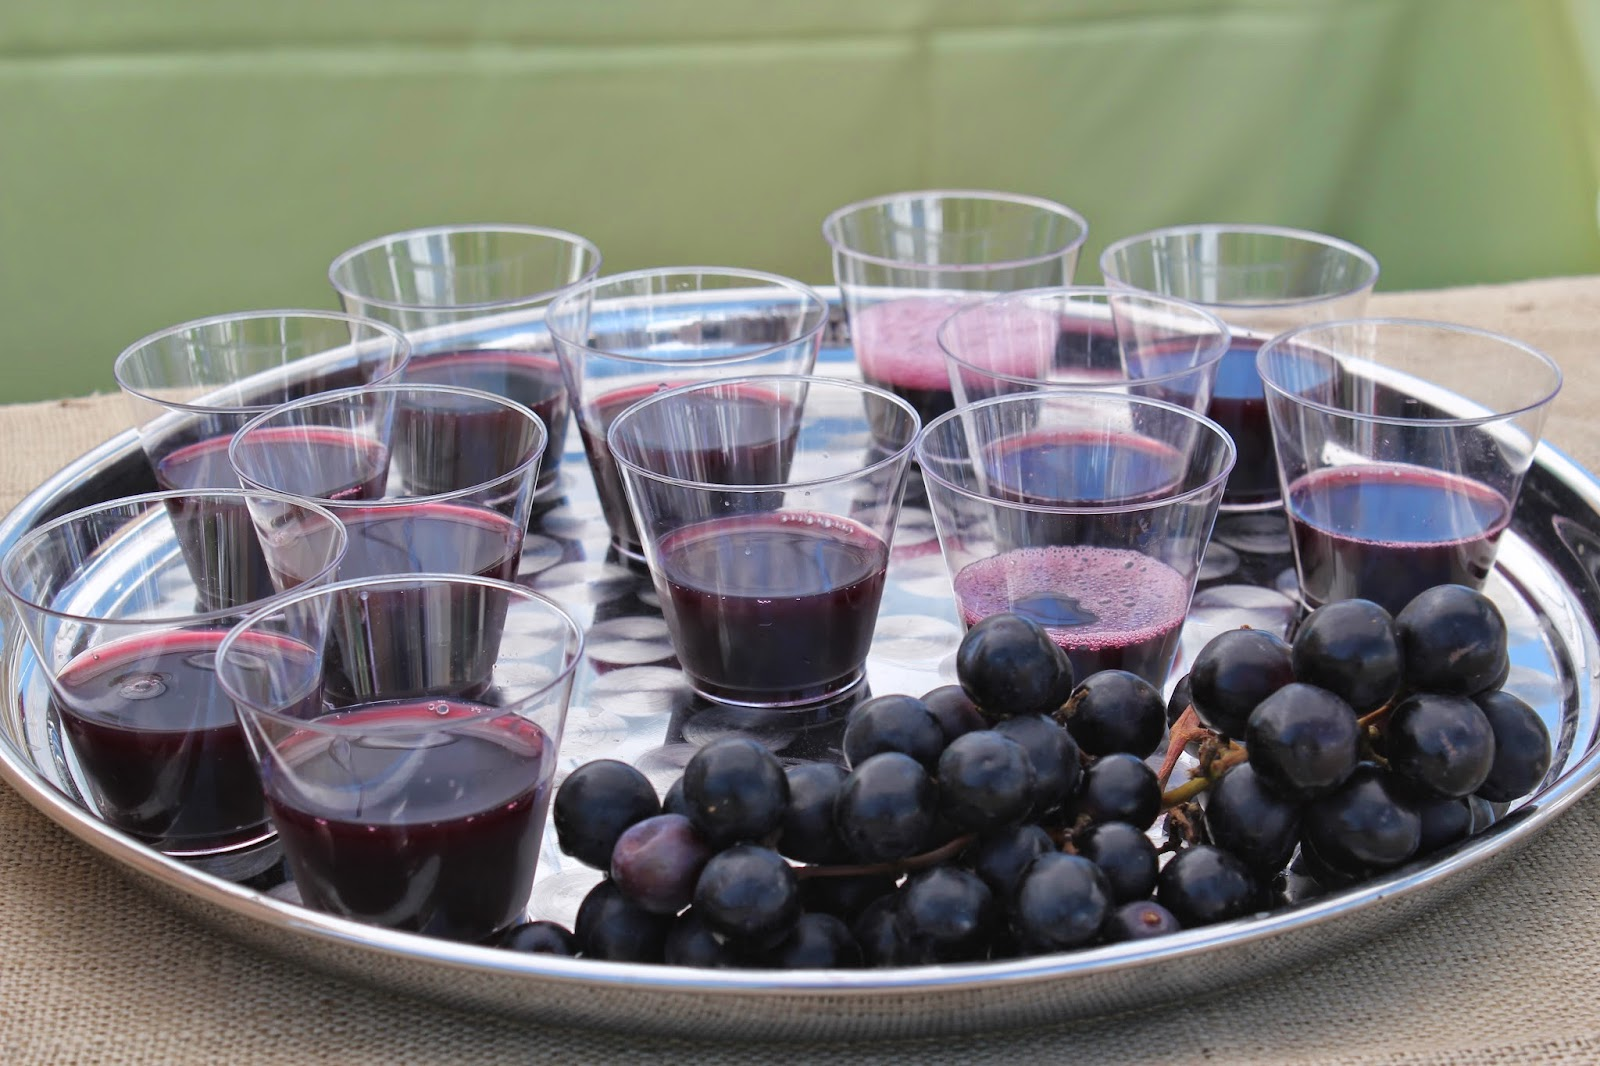 Samples of Farmer's Pick by Welch's Concord Grape juice